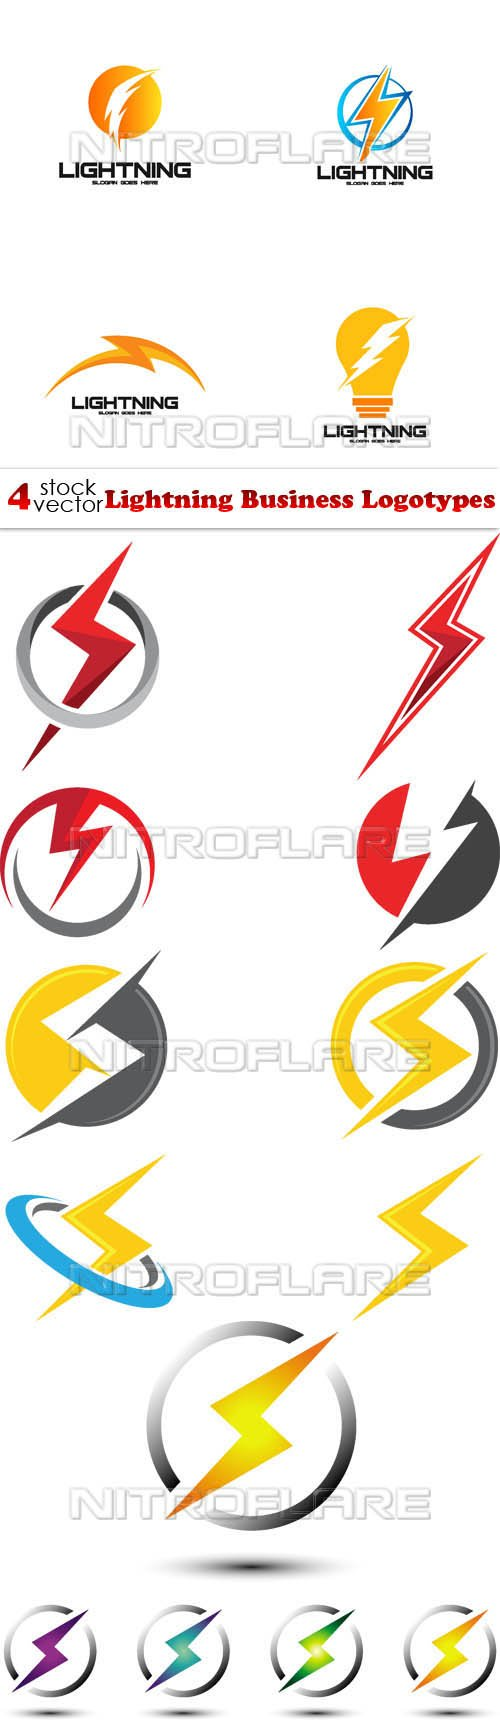 Vectors - Lightning Business Logotypes